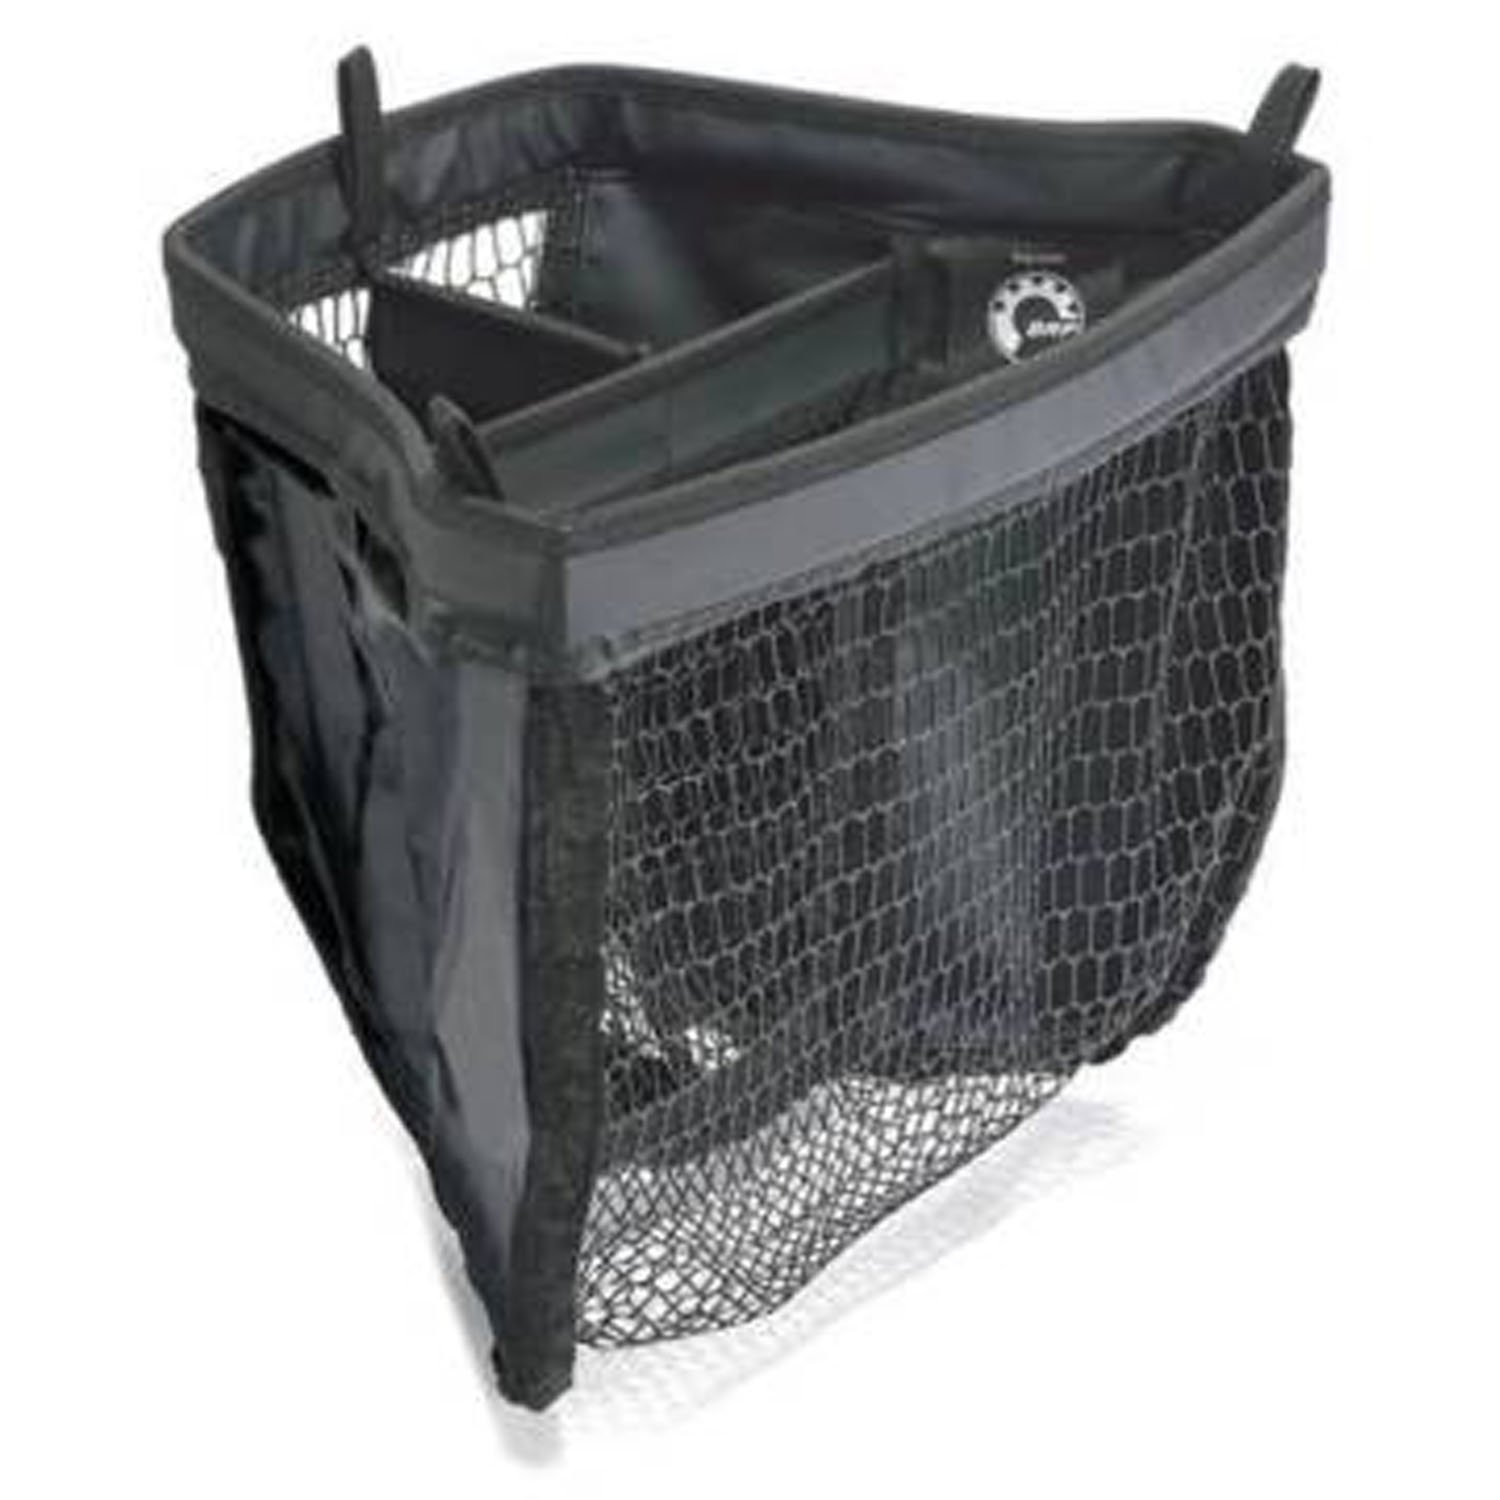 SEA-DOO REAR STORAGE BIN ORGANIZER 295100733